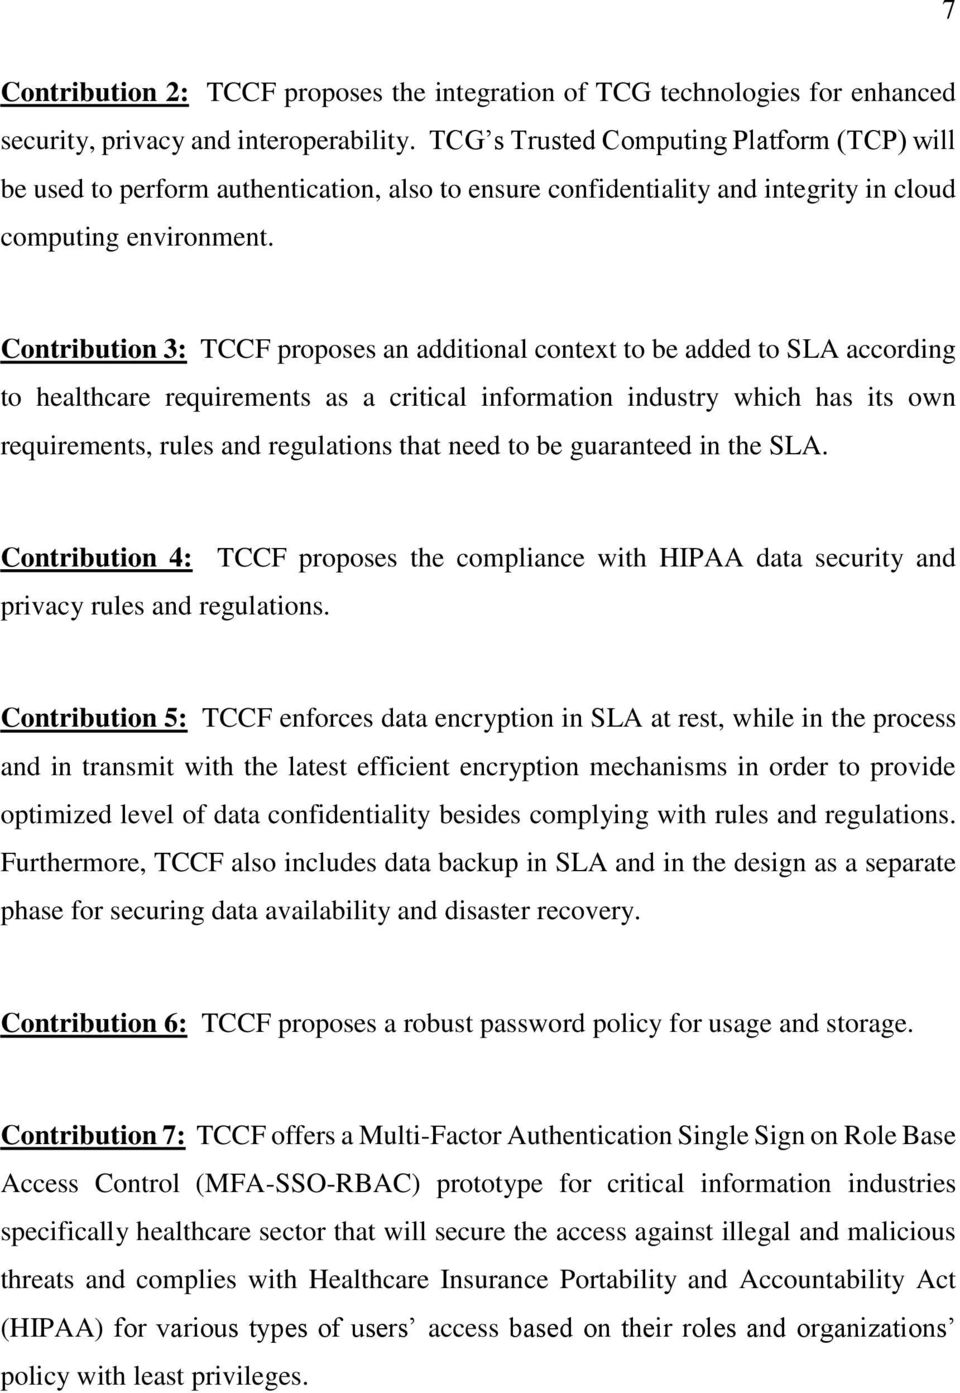 Contribution 3: TCCF proposes an additional context to be added to SLA according to healthcare requirements as a critical information industry which has its own requirements, rules and regulations